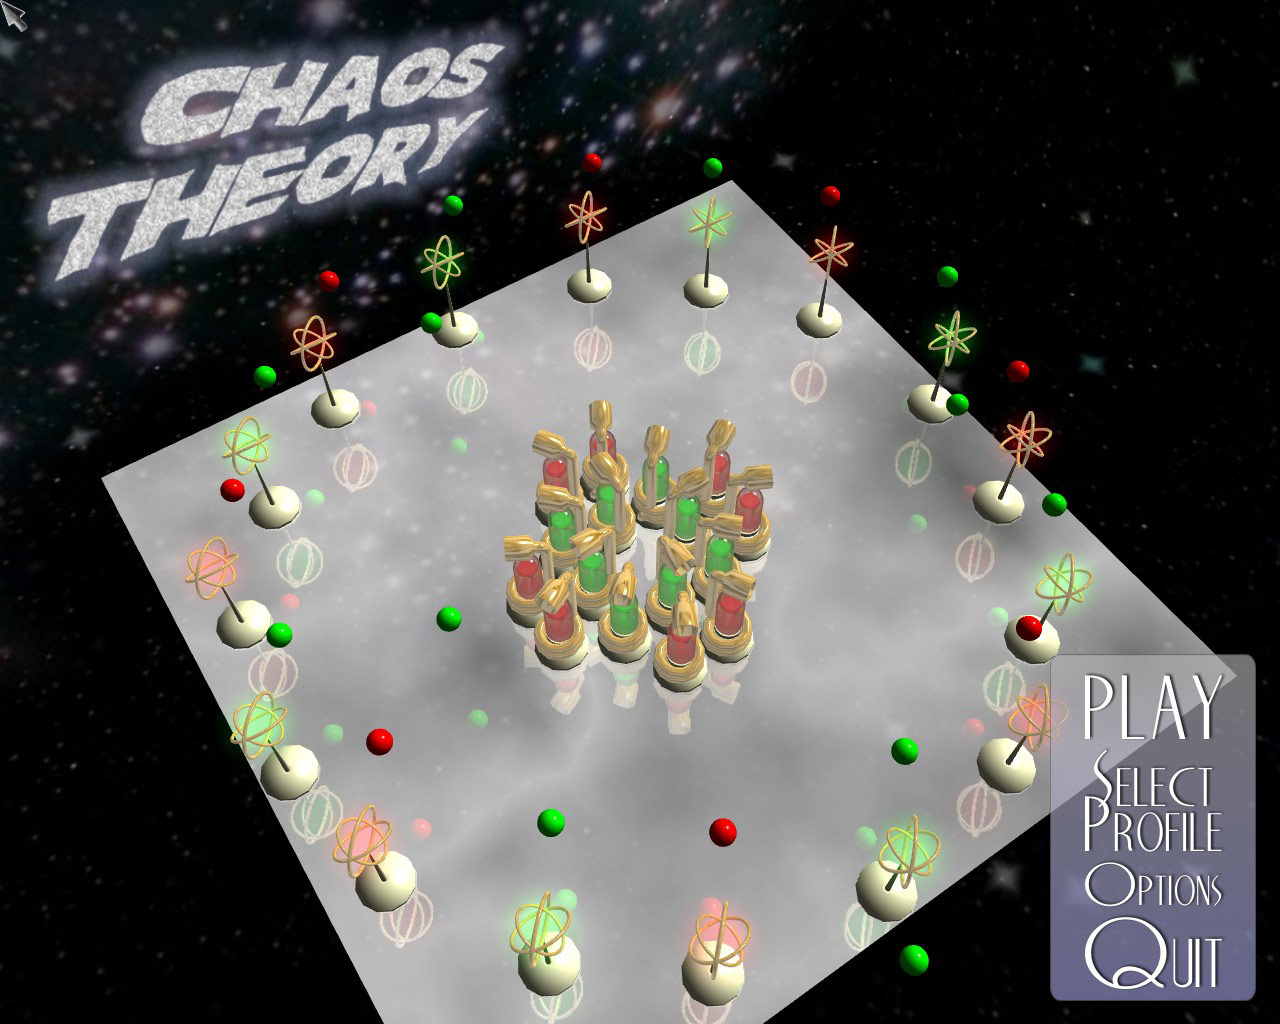 Chaos Theory screenshot